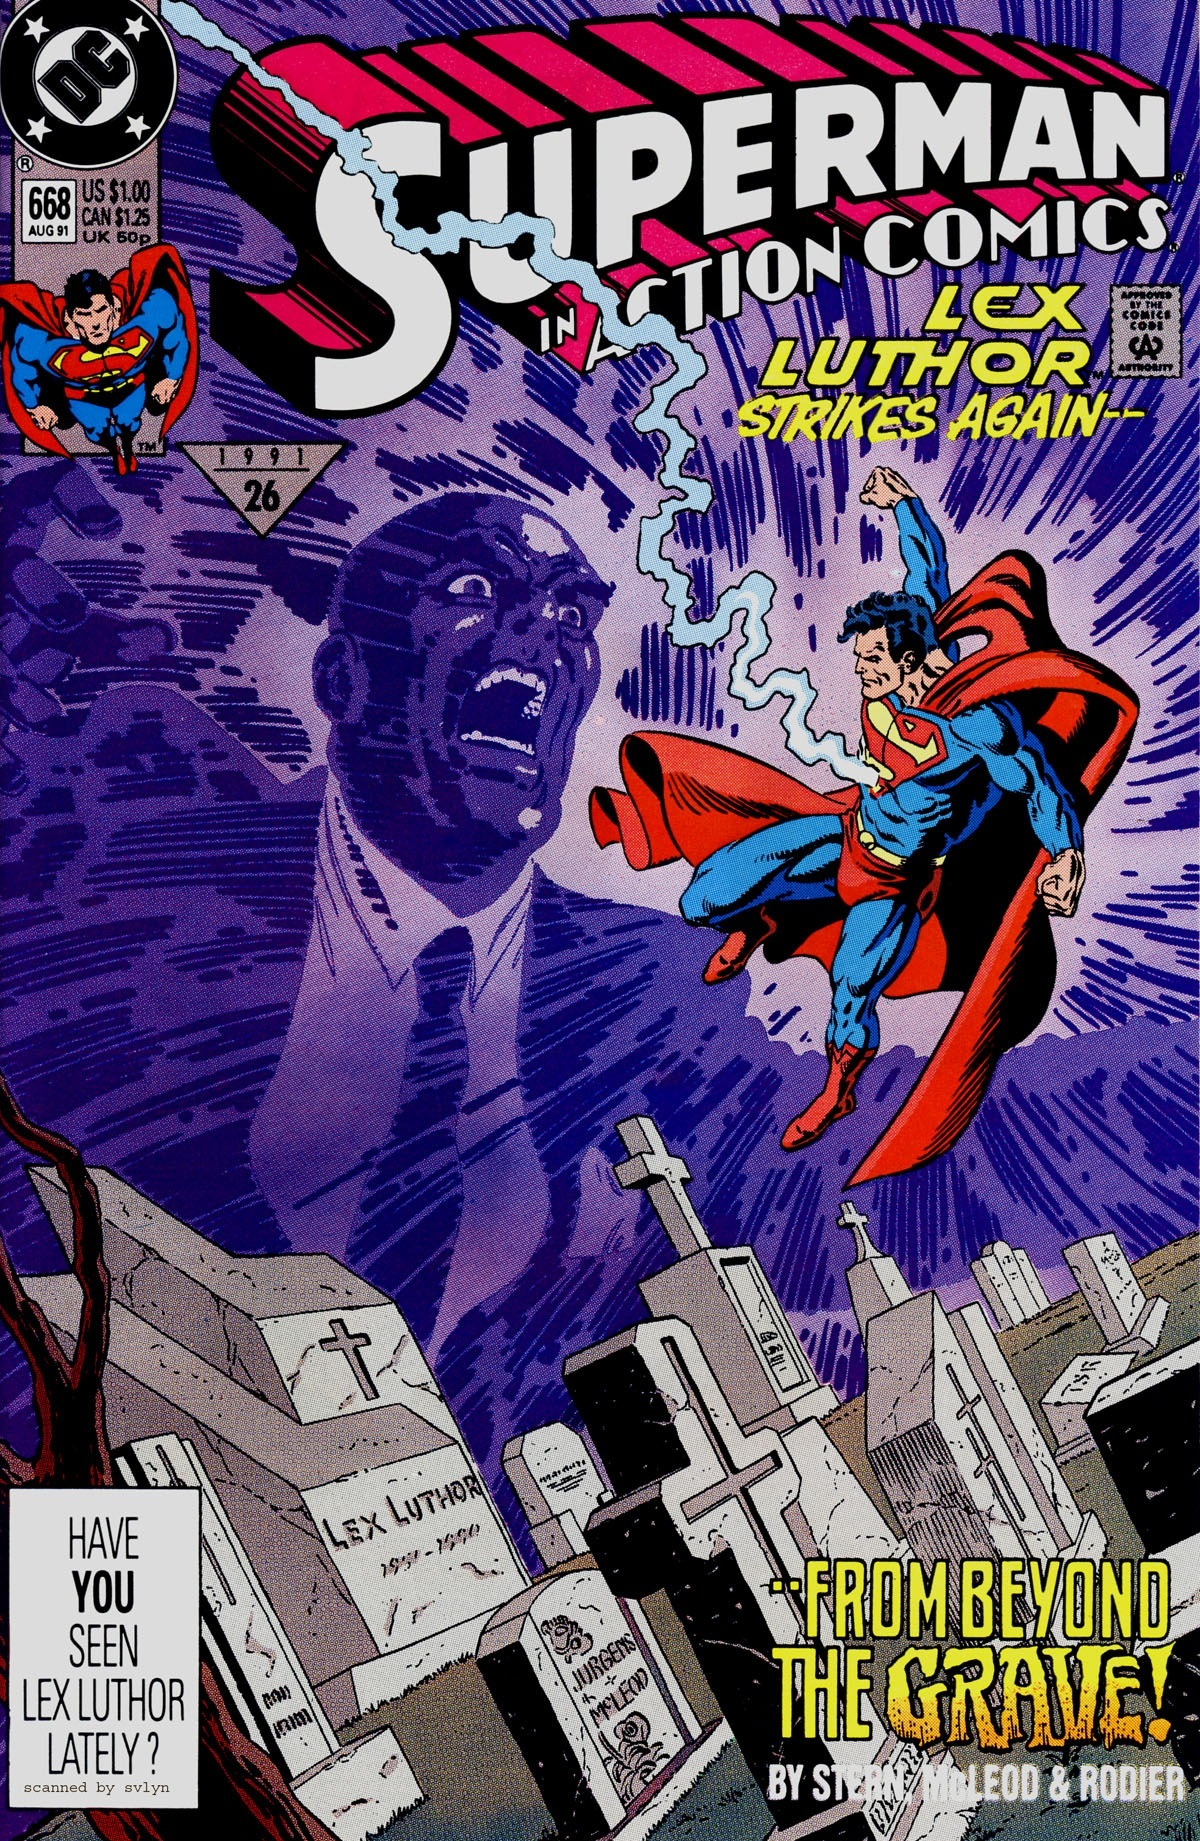 Action Comics (1938) #668, cover penciled by Dan Jurgens & inked by Bob McLeod.